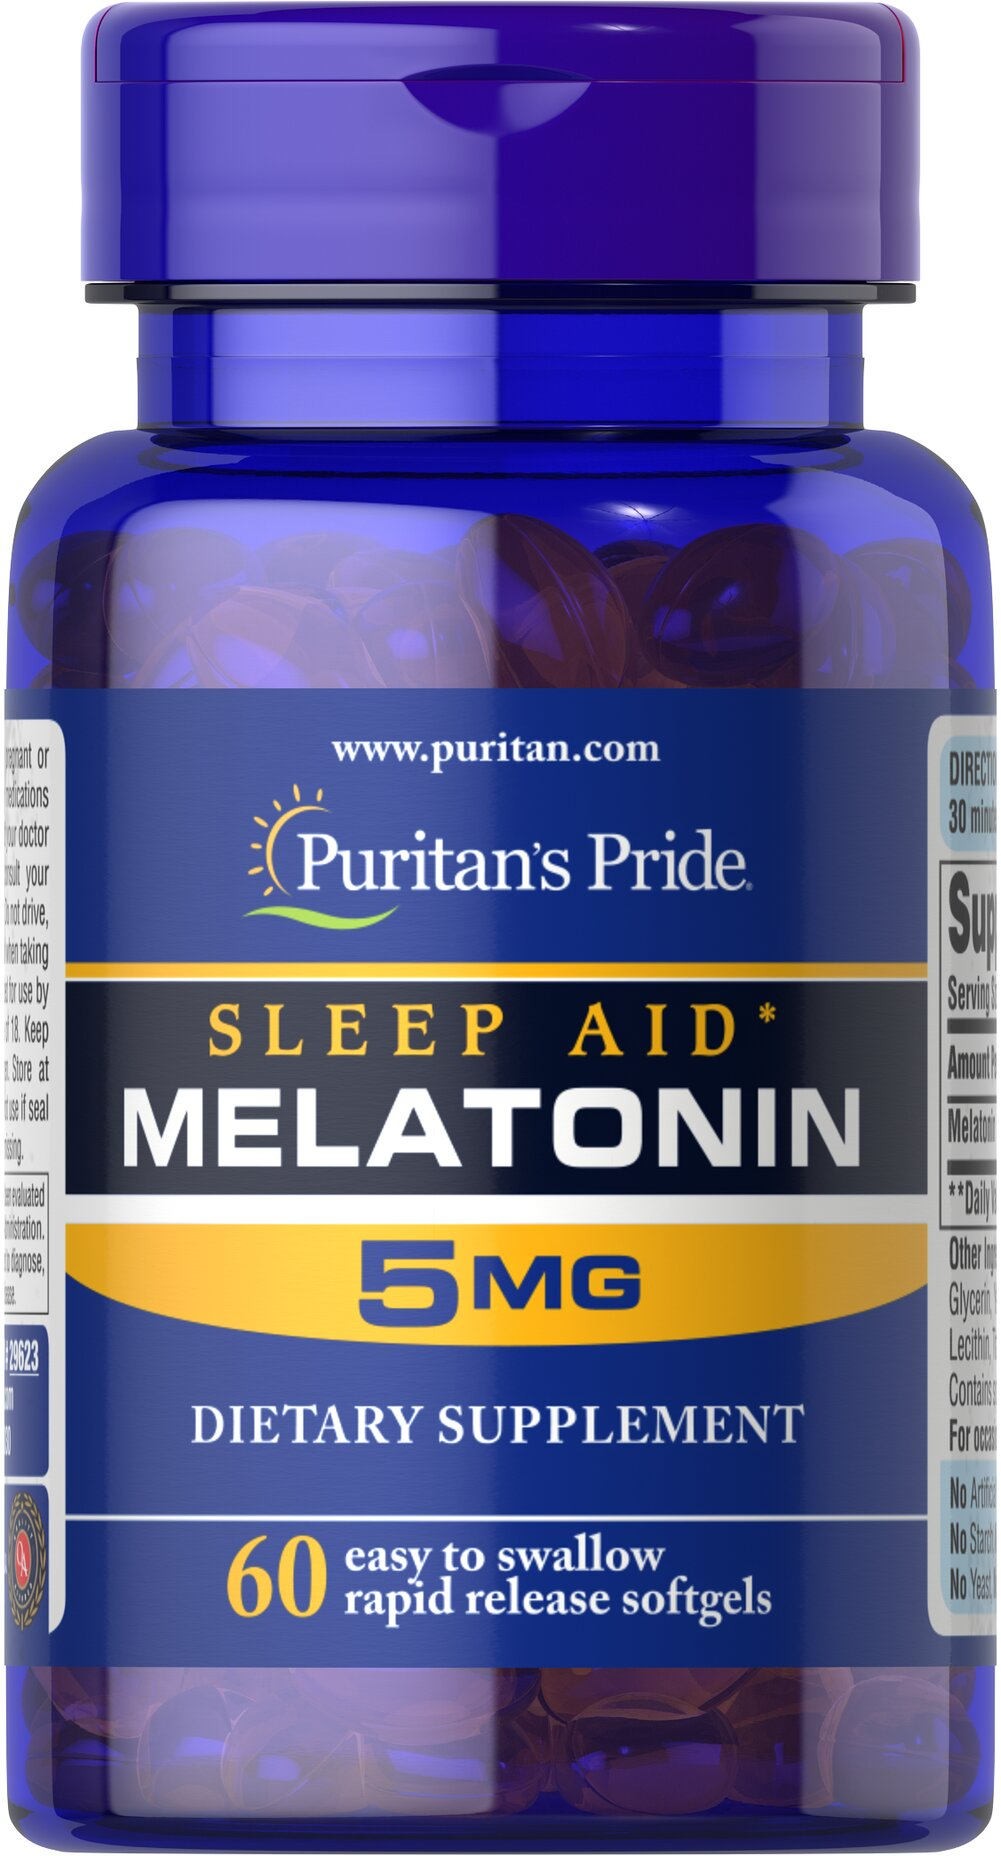 Extra Strength Melatonin 5 mg <ul><li>Extra Strength Melatonin is excellent for those experiencing jet lag or occasional sleeplessness.**</li><li>Melatonin helps maintain nighttime blood pressure levels already within a normal range, which may contribute to restful sleep.** </li><li>Convenient Rapid Release Softgel</li><li>Melatonin helps you fall asleep quickly and stay asleep longer**</li></ul> 60 Softgels 5 mg $7.29